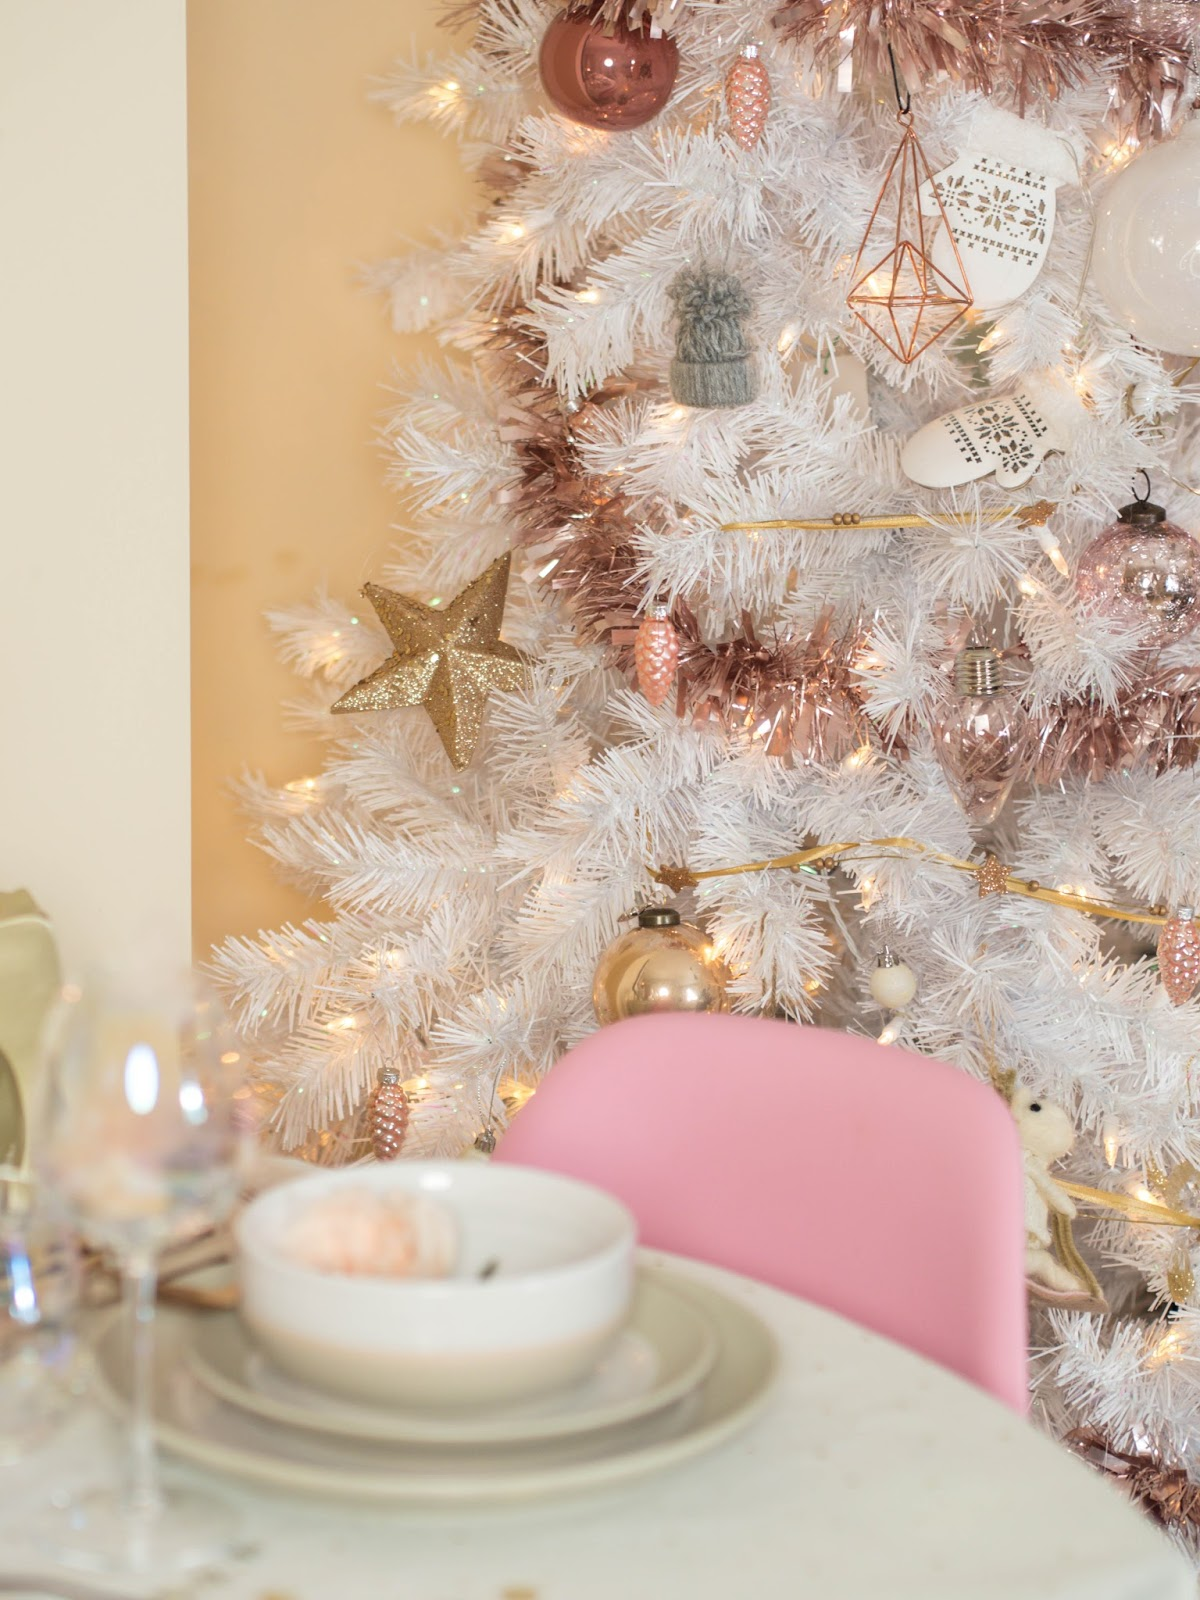 White christmas tree with pink decorations - White Christmas Tree With Pink Decorations 42